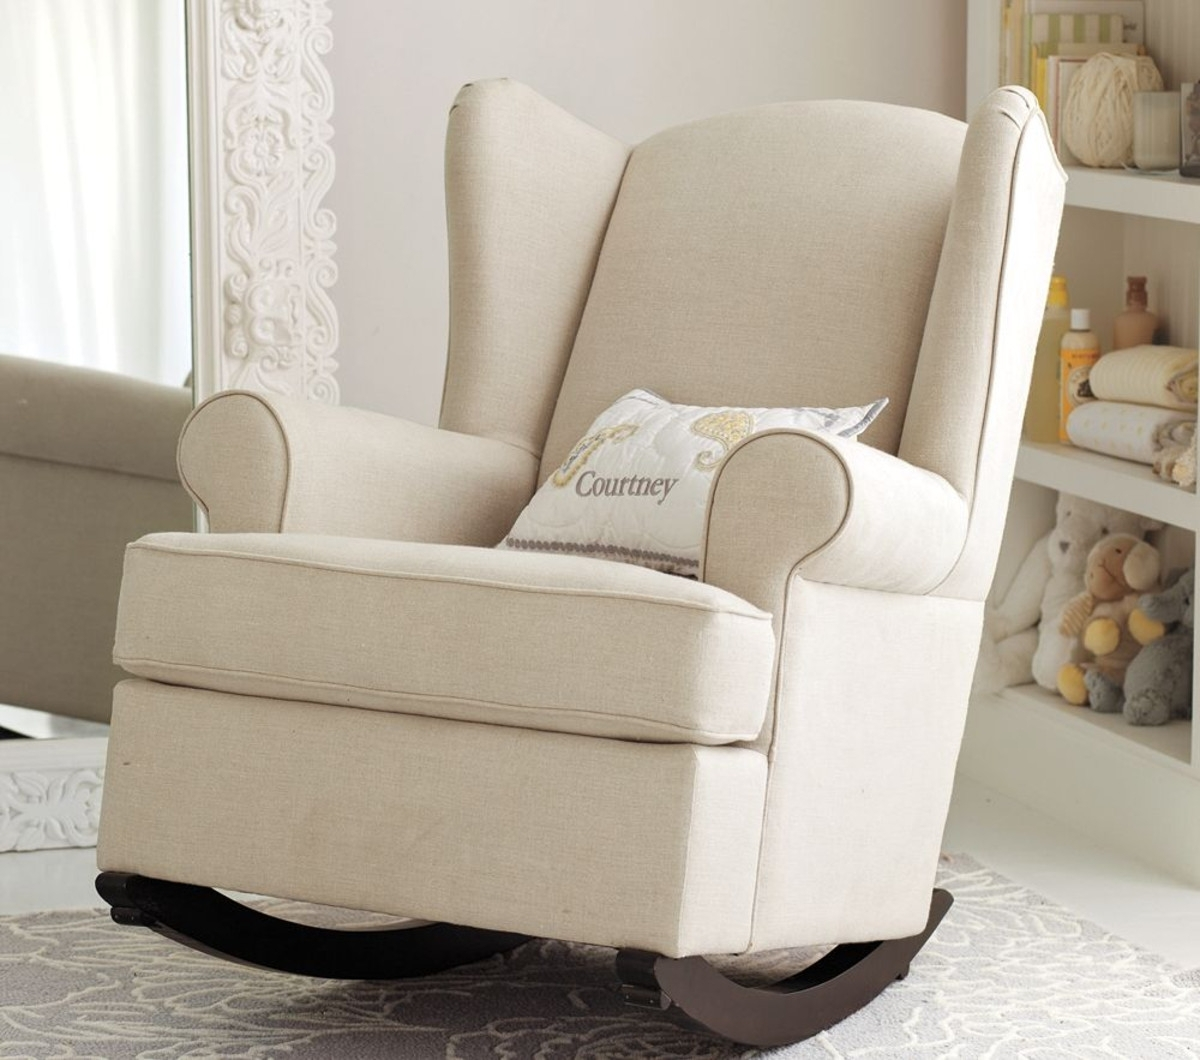 Rocking Chair For Nursery Pregnancy F20X On Most Luxury Small Space In Rocking Chairs For Small Spaces (#12 of 15)